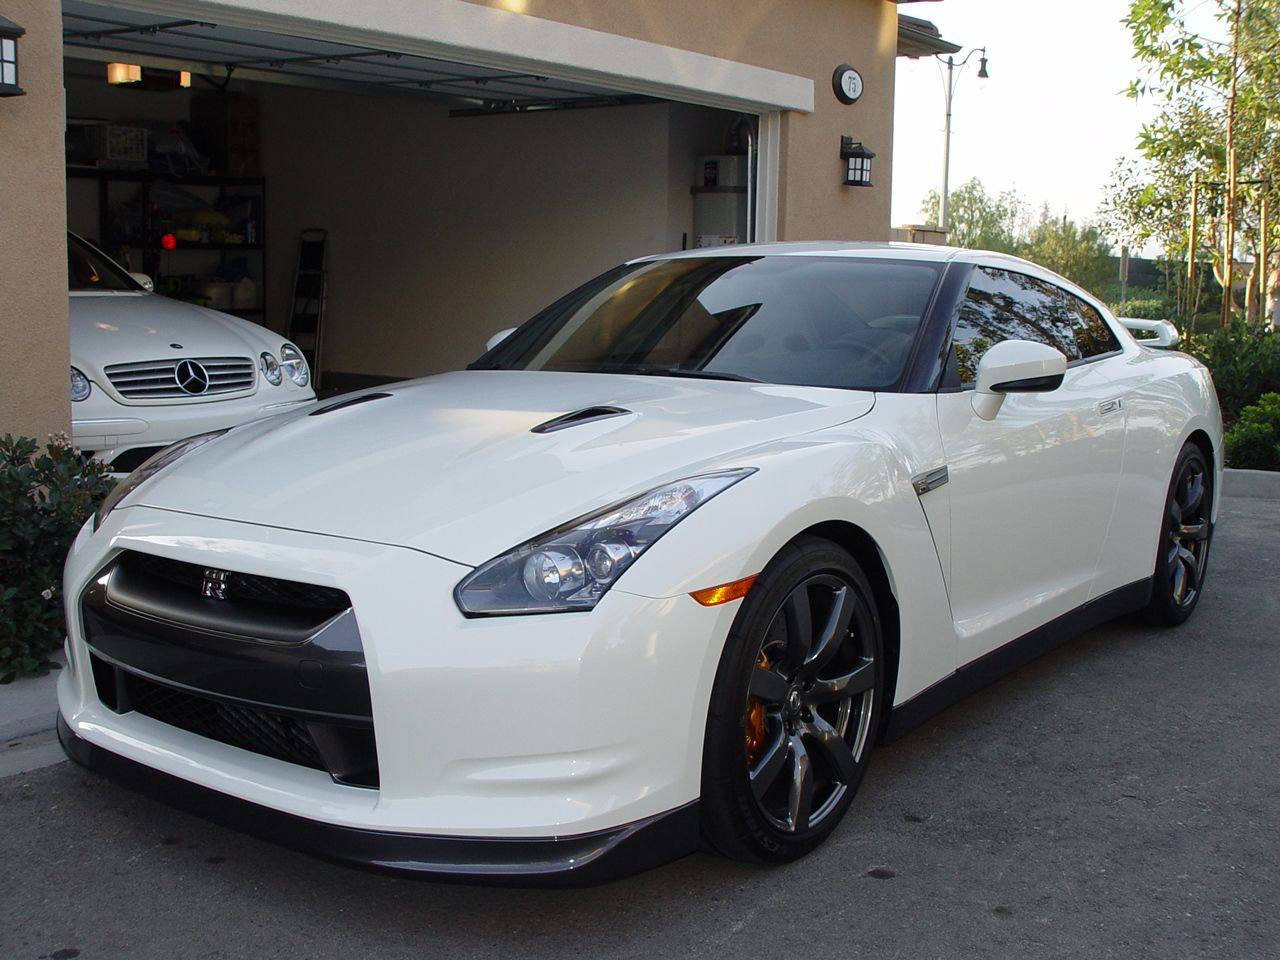 Unexpectedly We Got The 2014 Nissan Gtr In Paris Against All.